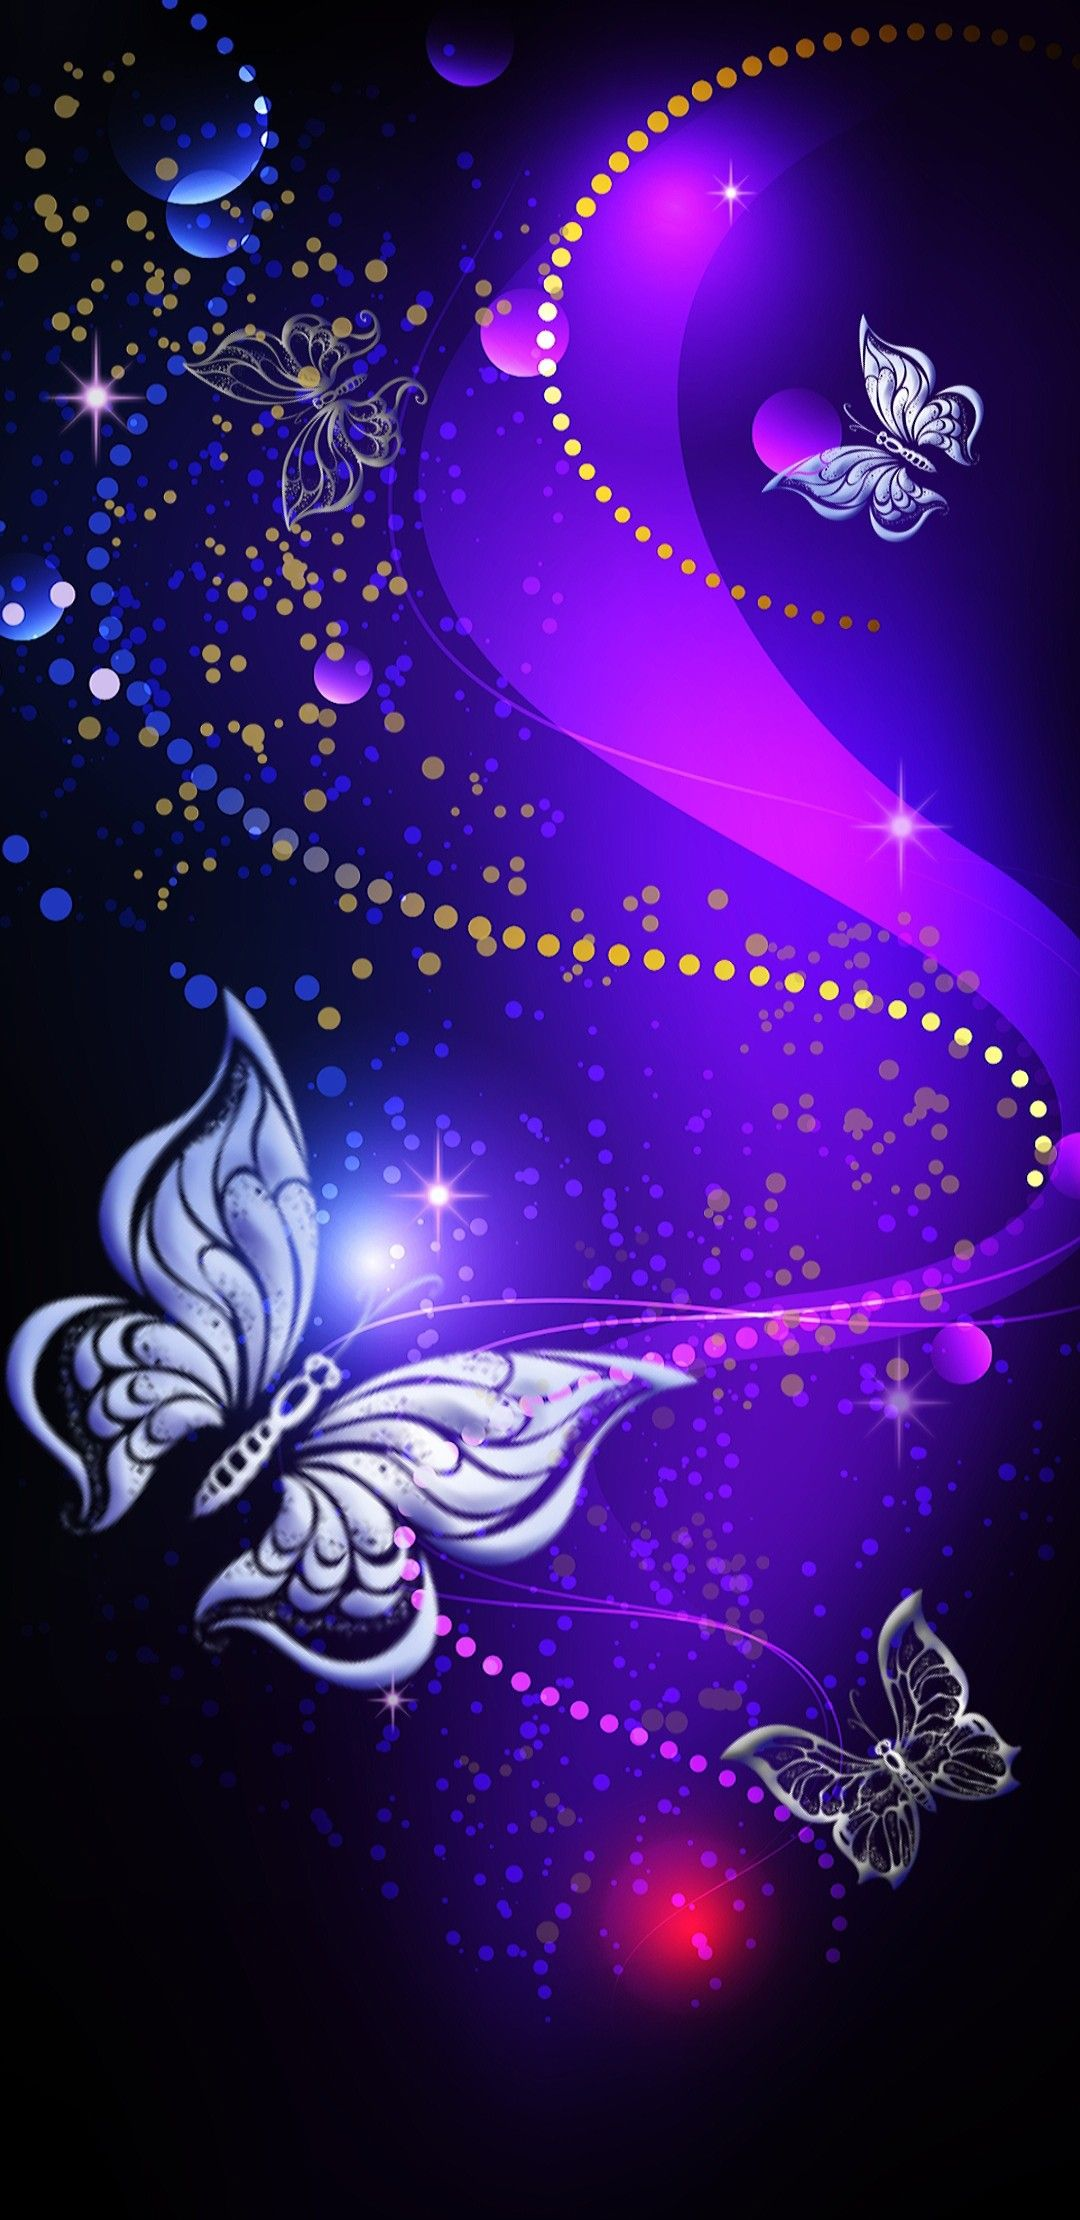 Black Purple Background With Butterfly Beauty Iphone Wallpaper Butterfly Background Butterfly Art